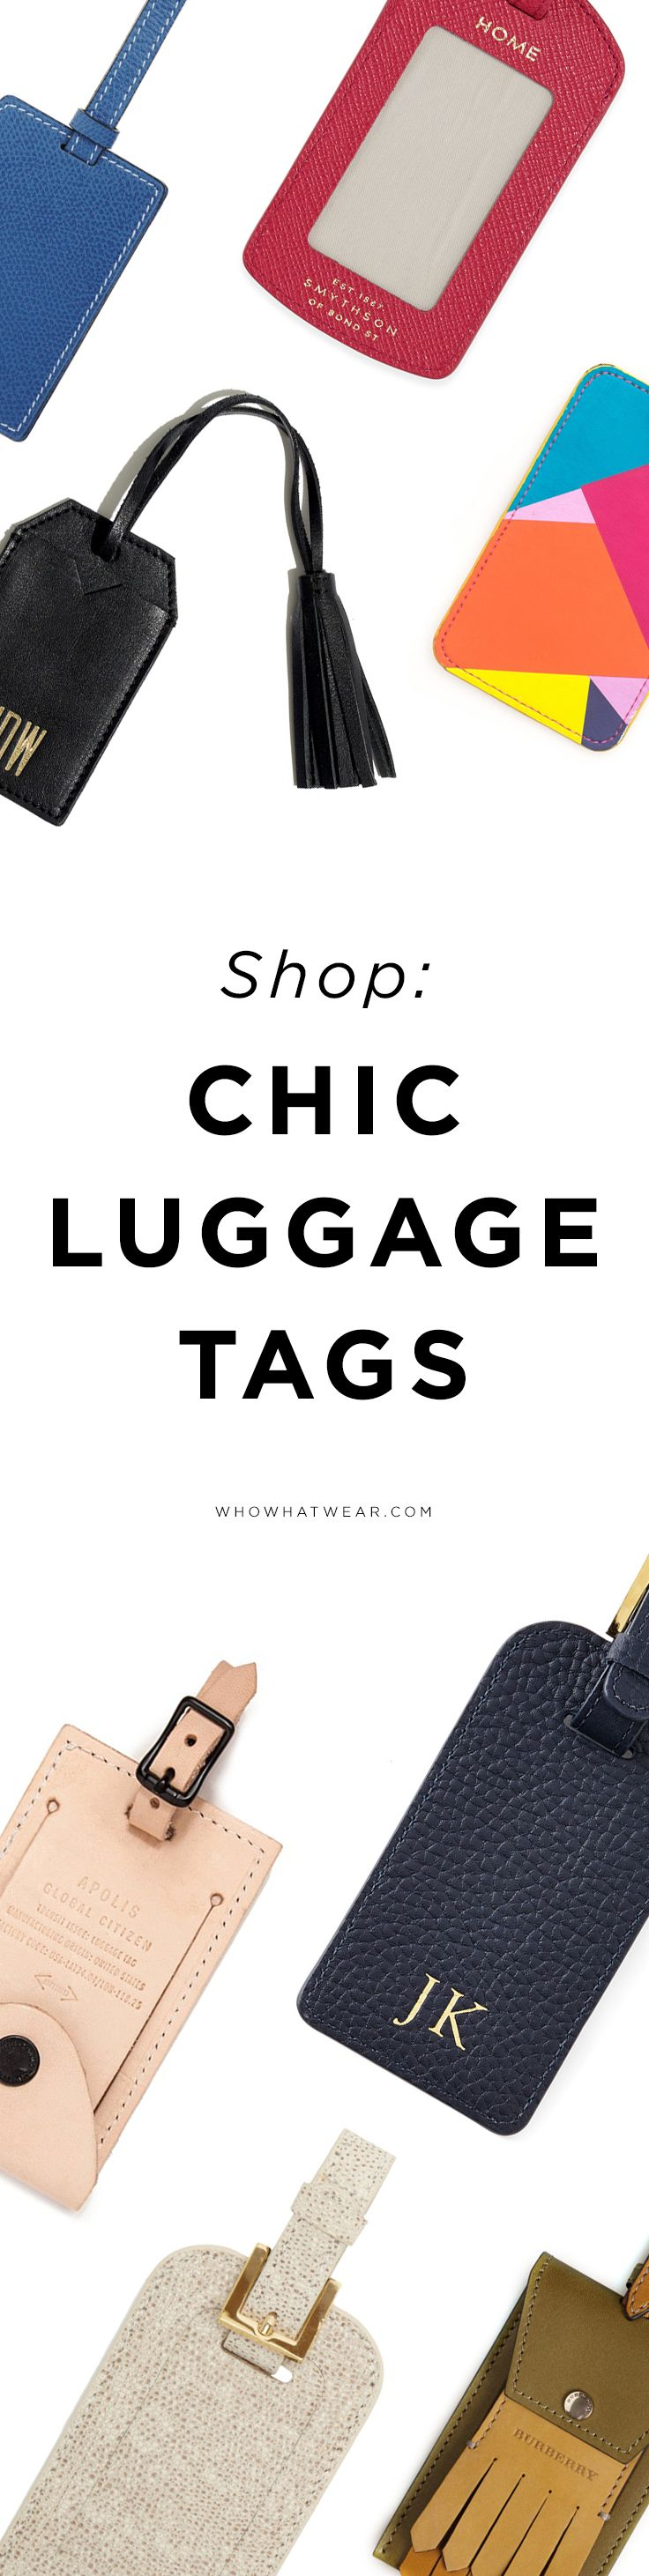 Shop chic luggage tags